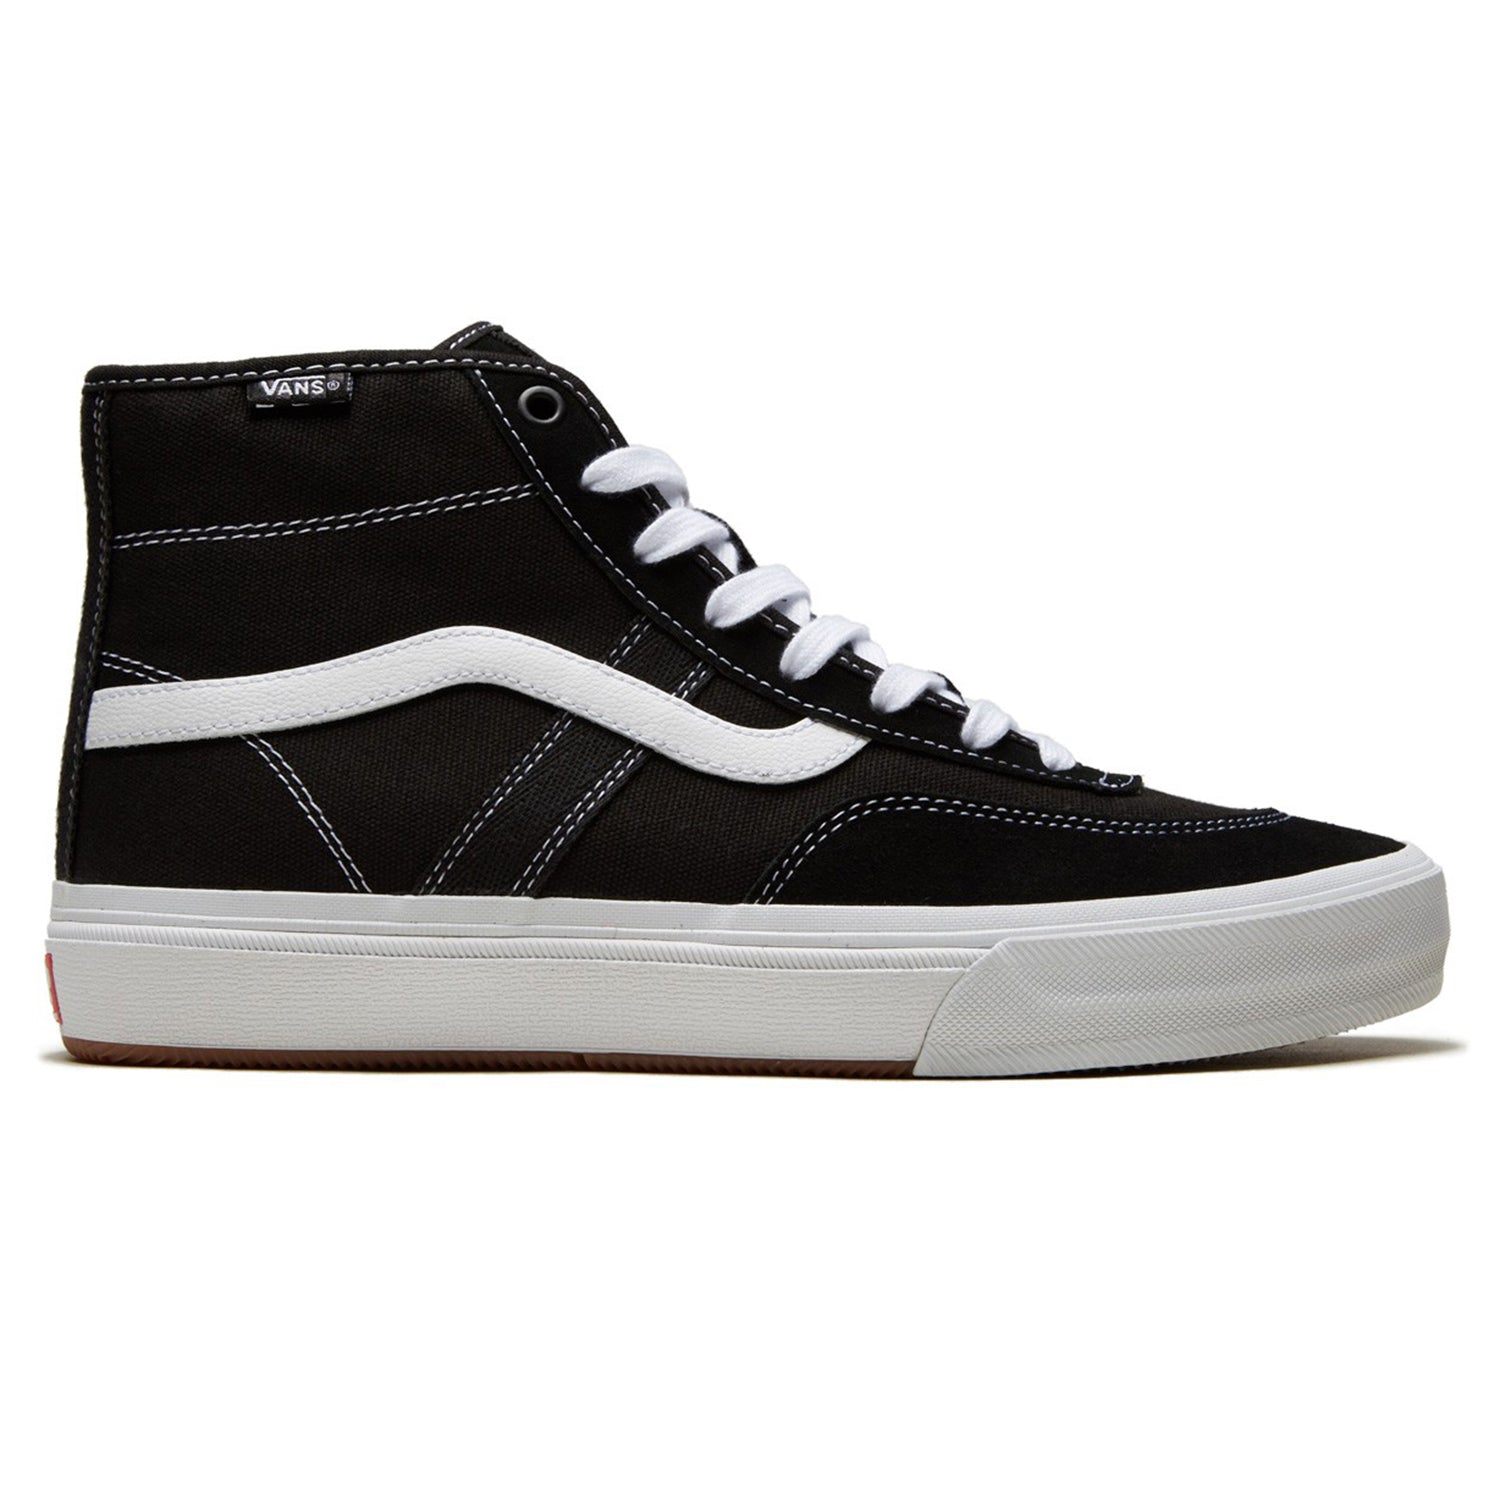 Vans Crockett High Pro Black/Black